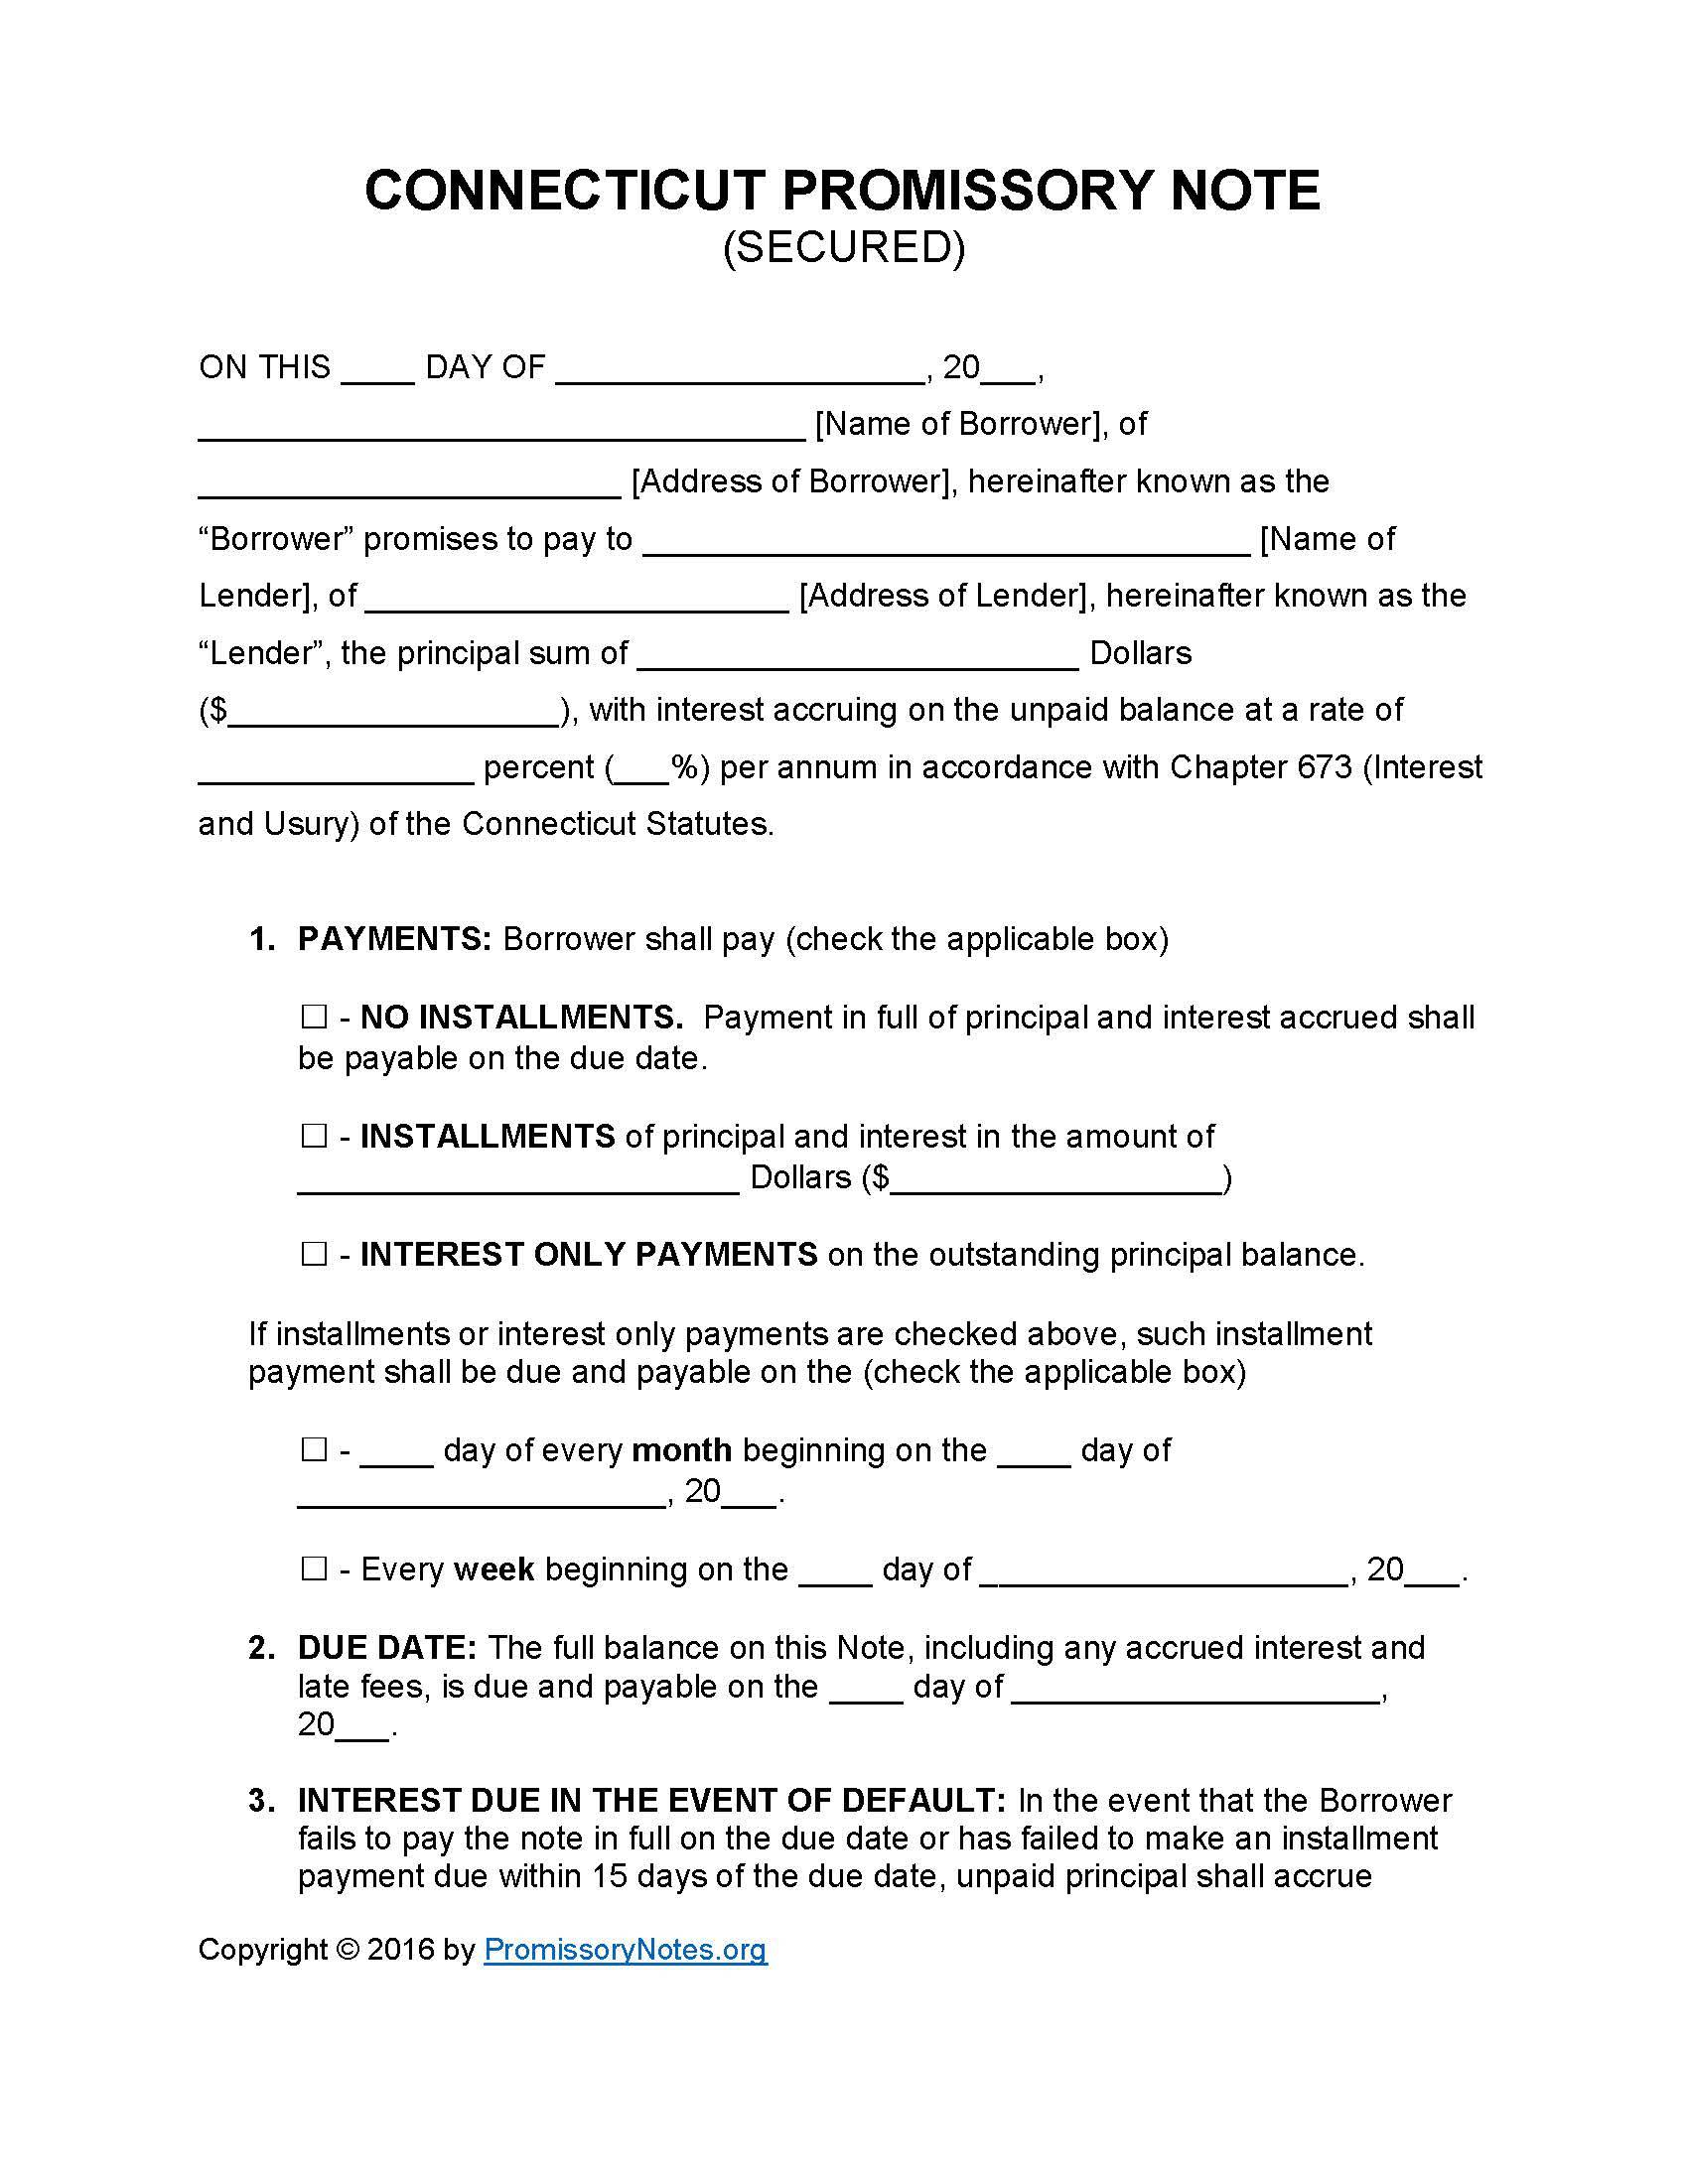 Secured Promissory Note Word Template